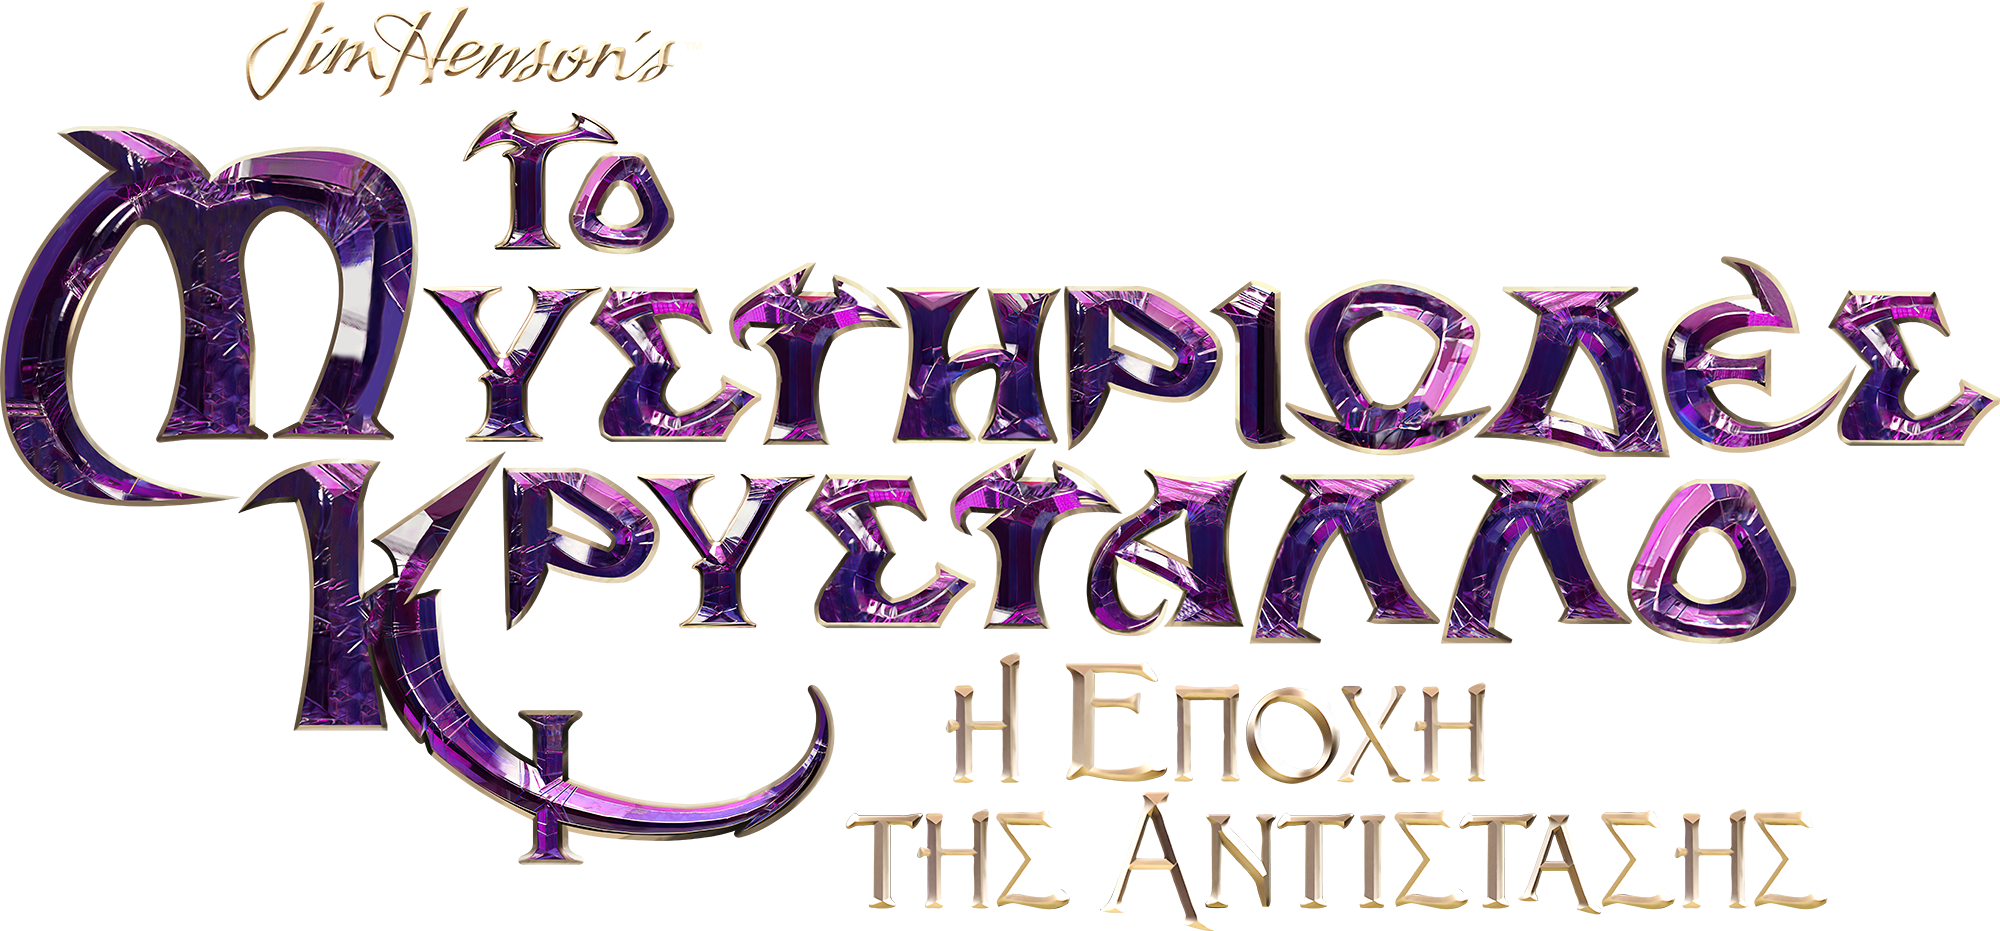 The Dark Crystal The Age of Resistance Greek title design for Netflix